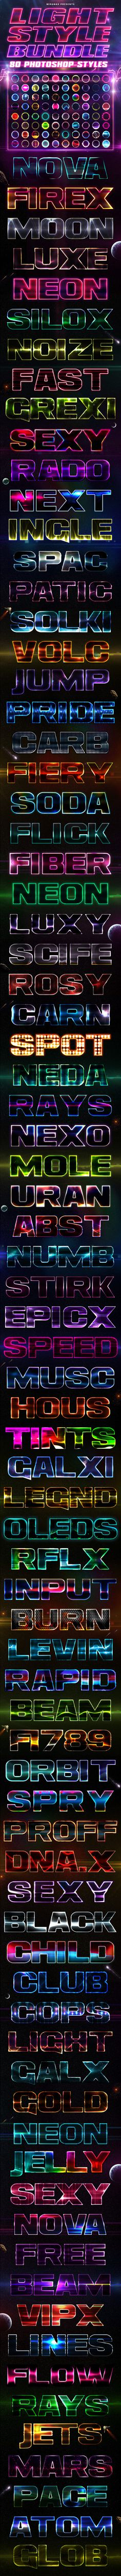 80 Lighting PSD Text Effects Bundle (PSD, CS, asl, bundle, chrome, chrome styles, colorful, fire, galaxy, game style, glow, gold, layer style, lcd, led, light, lighting, lighting effects, metallic, neon, photoshop styles, psd style, shiny, silver, space, style, styles, text effect, text effects, text style, text styles)